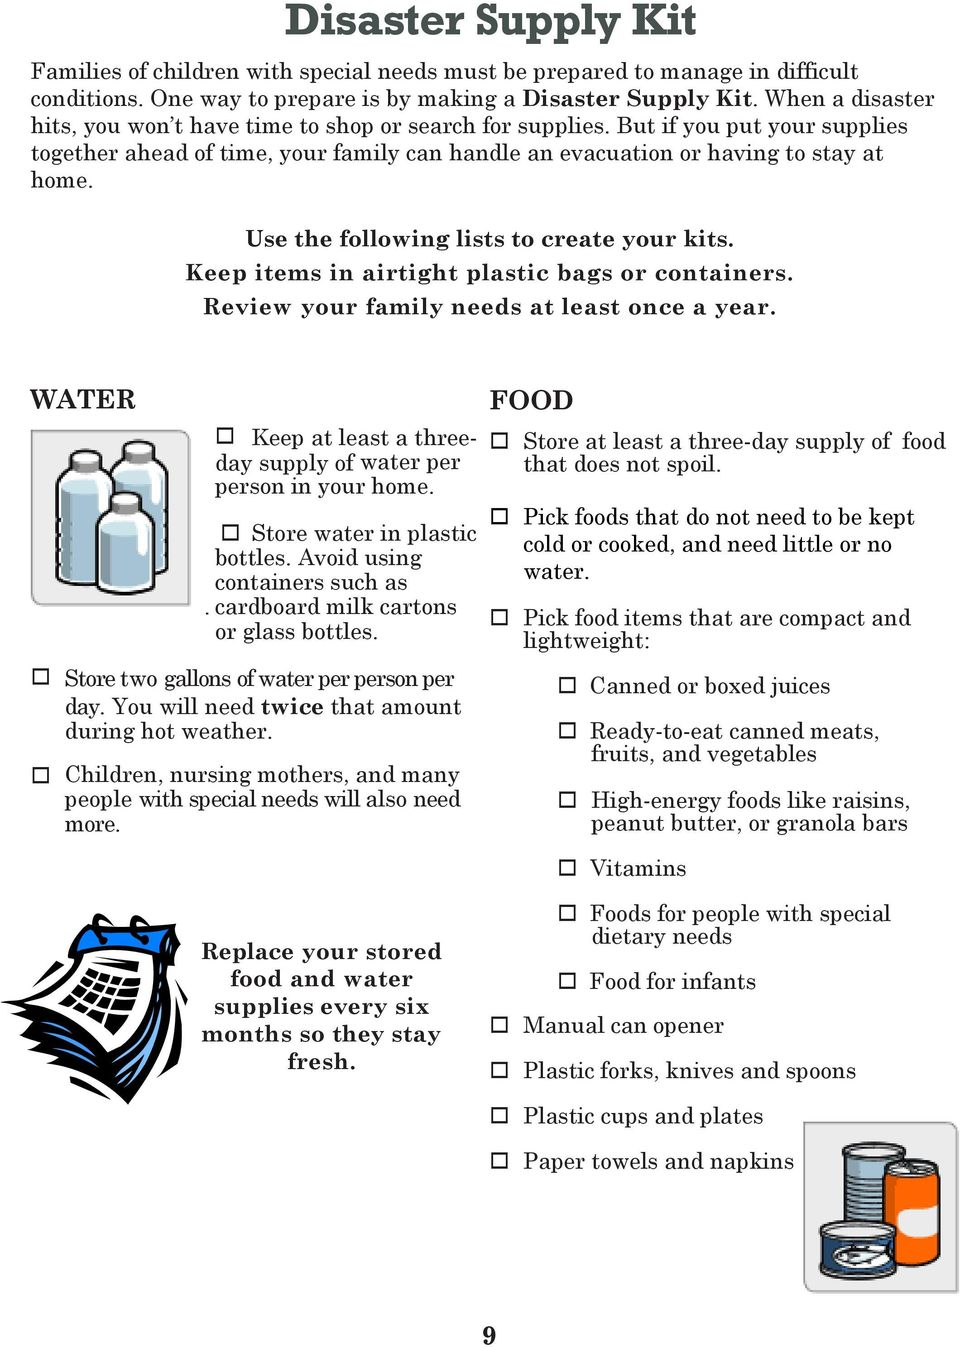 Use the following lists to create your kits. Keep items in airtight plastic bags or containers. Review your family needs at least once a year.